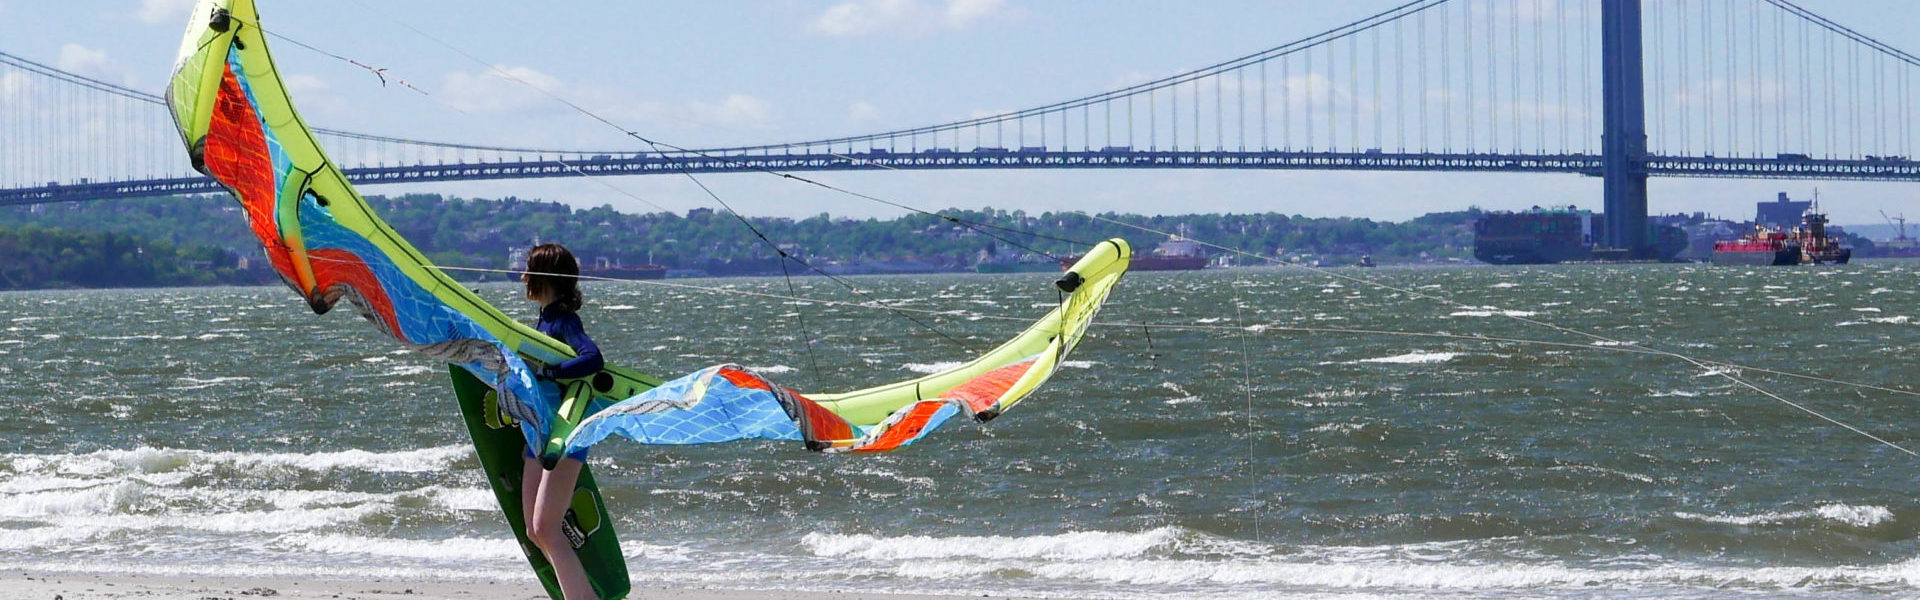 kiteboarding nyc